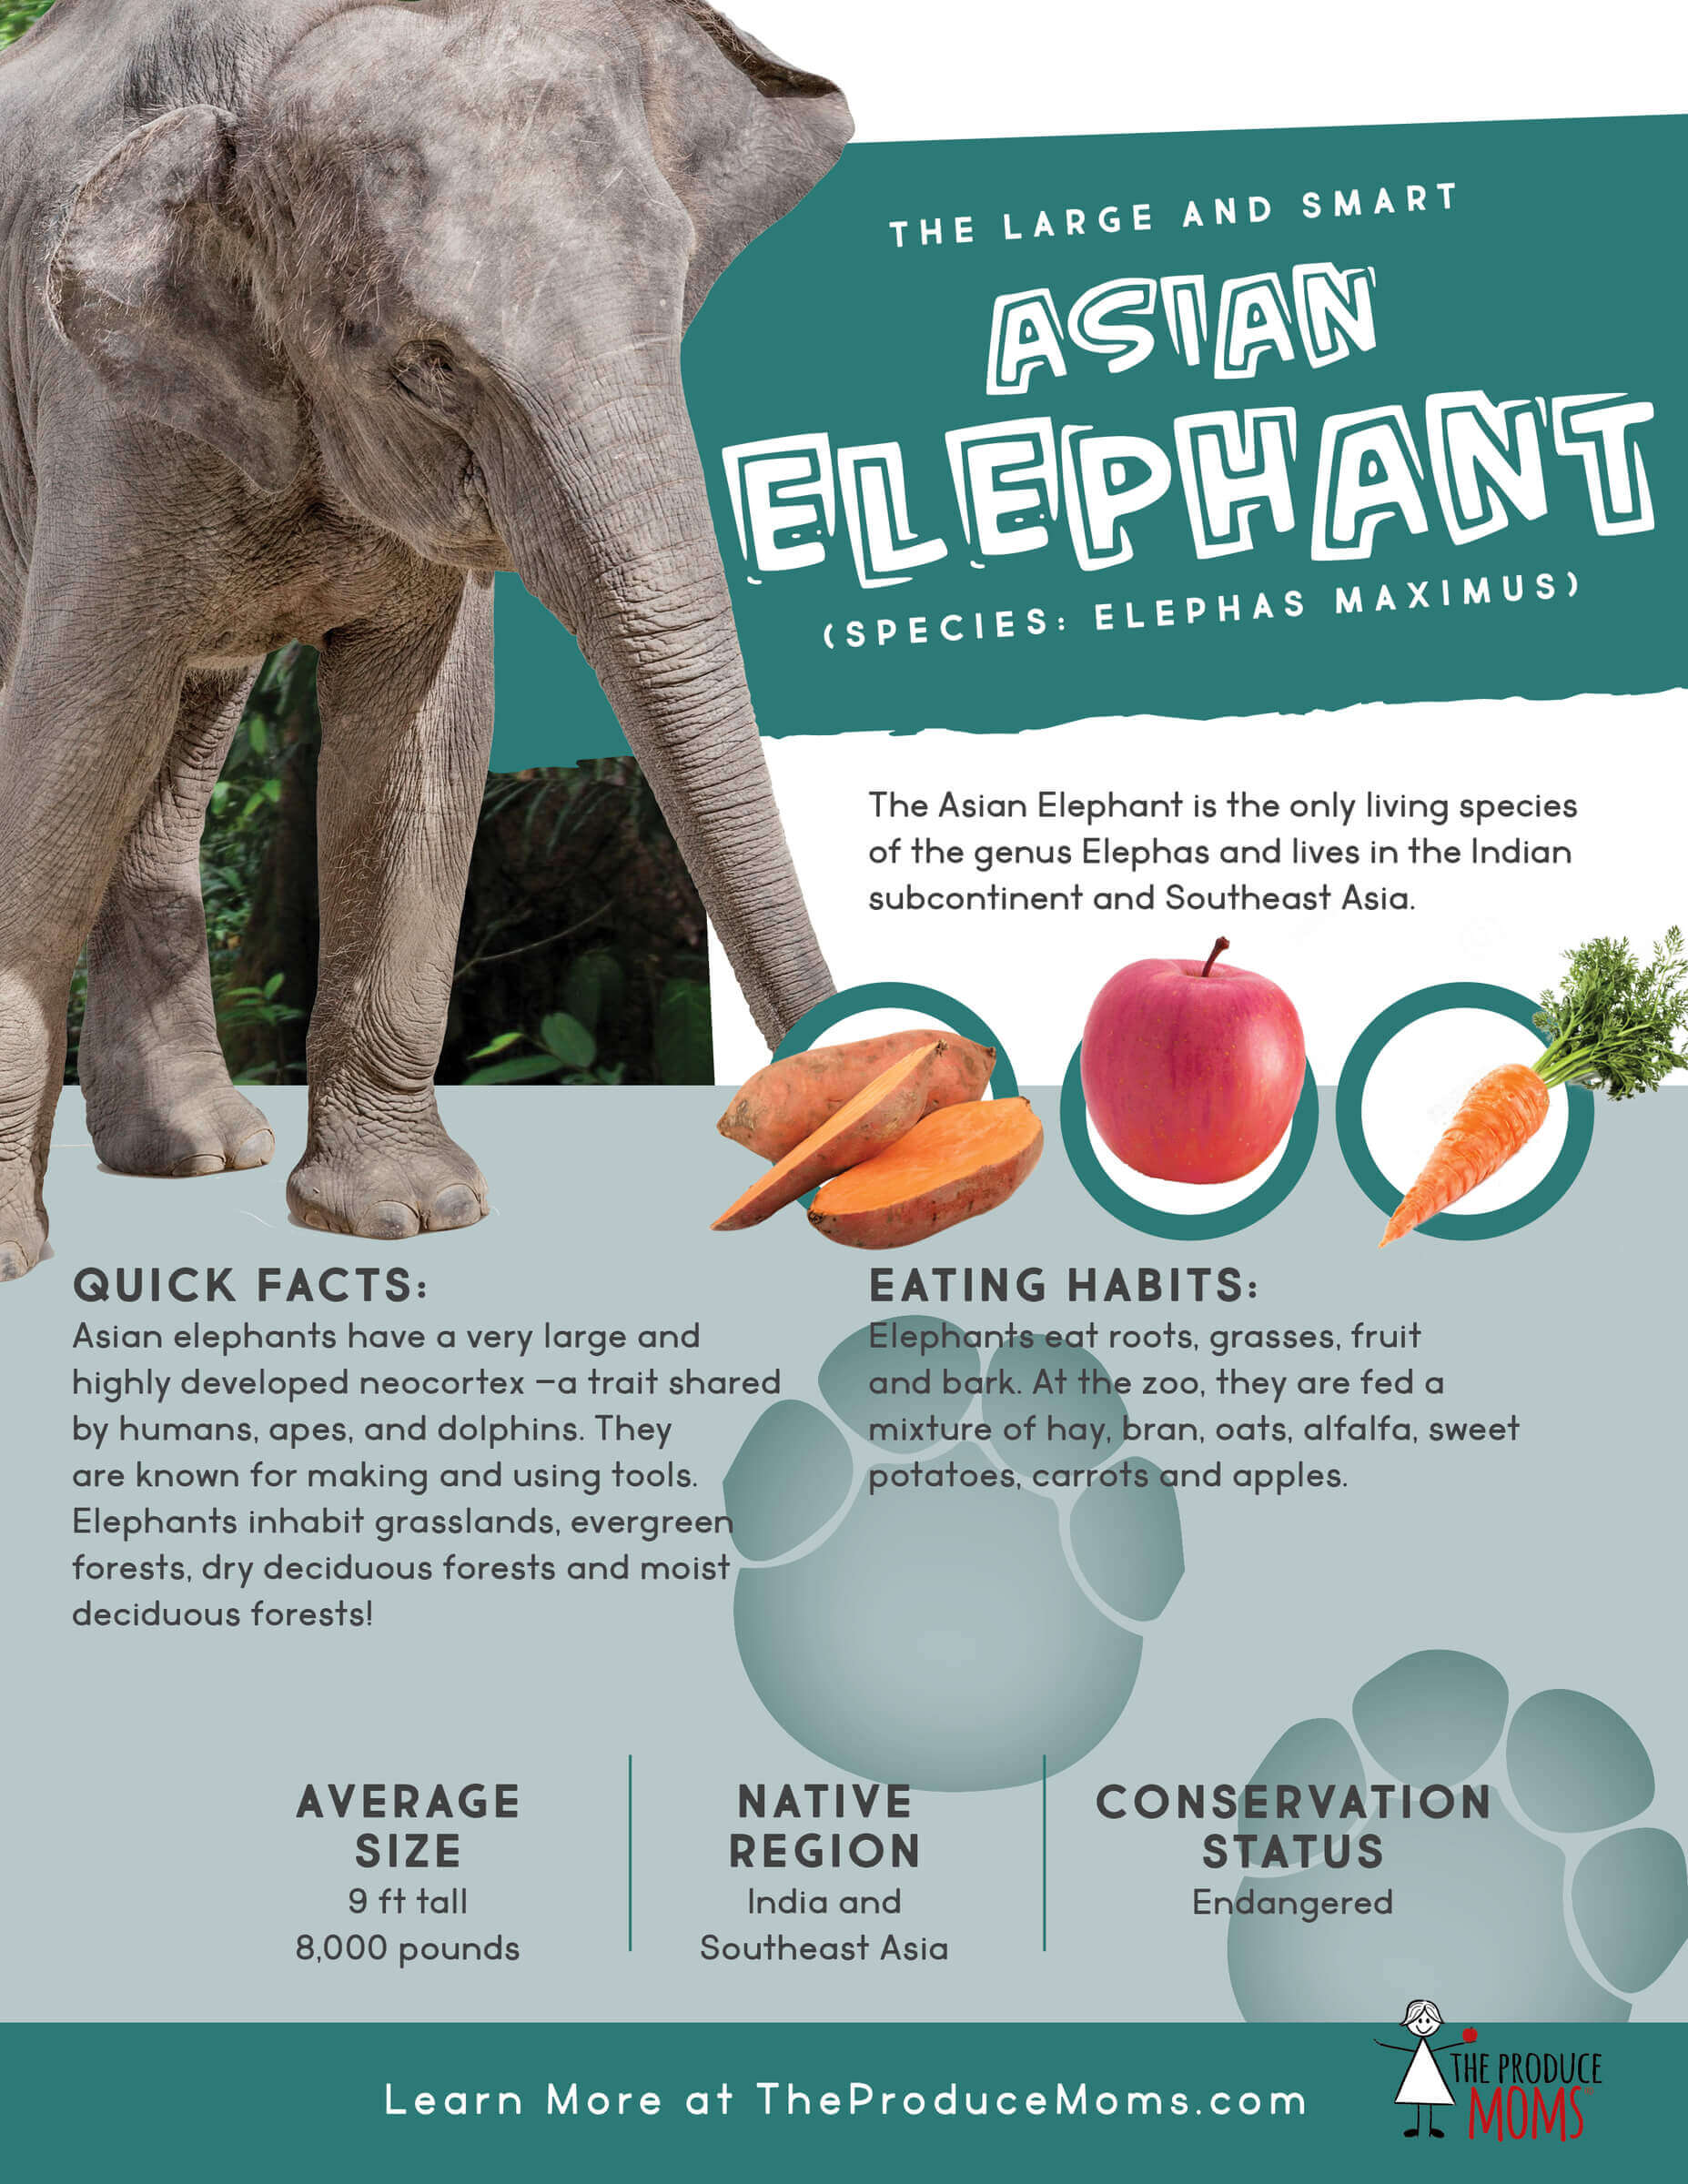 Quick Facts about Asian Elephants